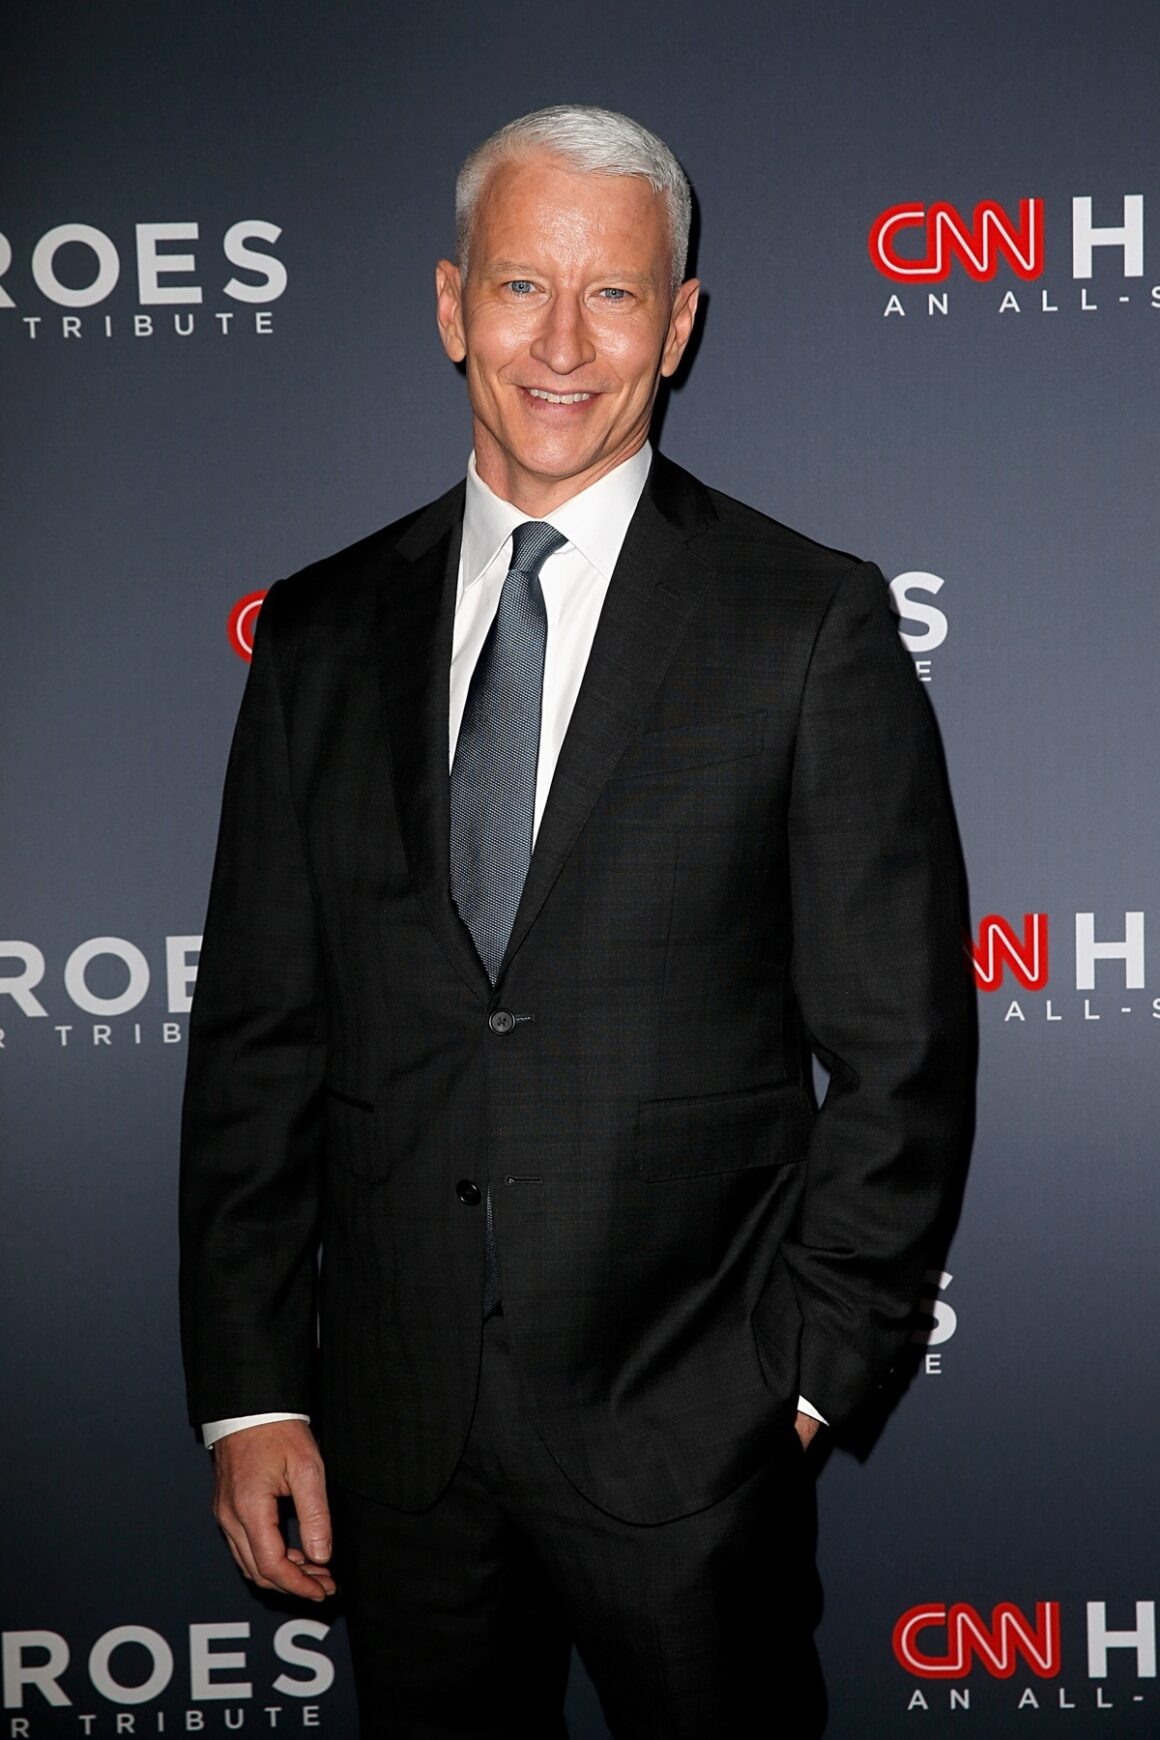 Anderson Cooper 12th Annual CNN Heroes: An All-Star Tribute